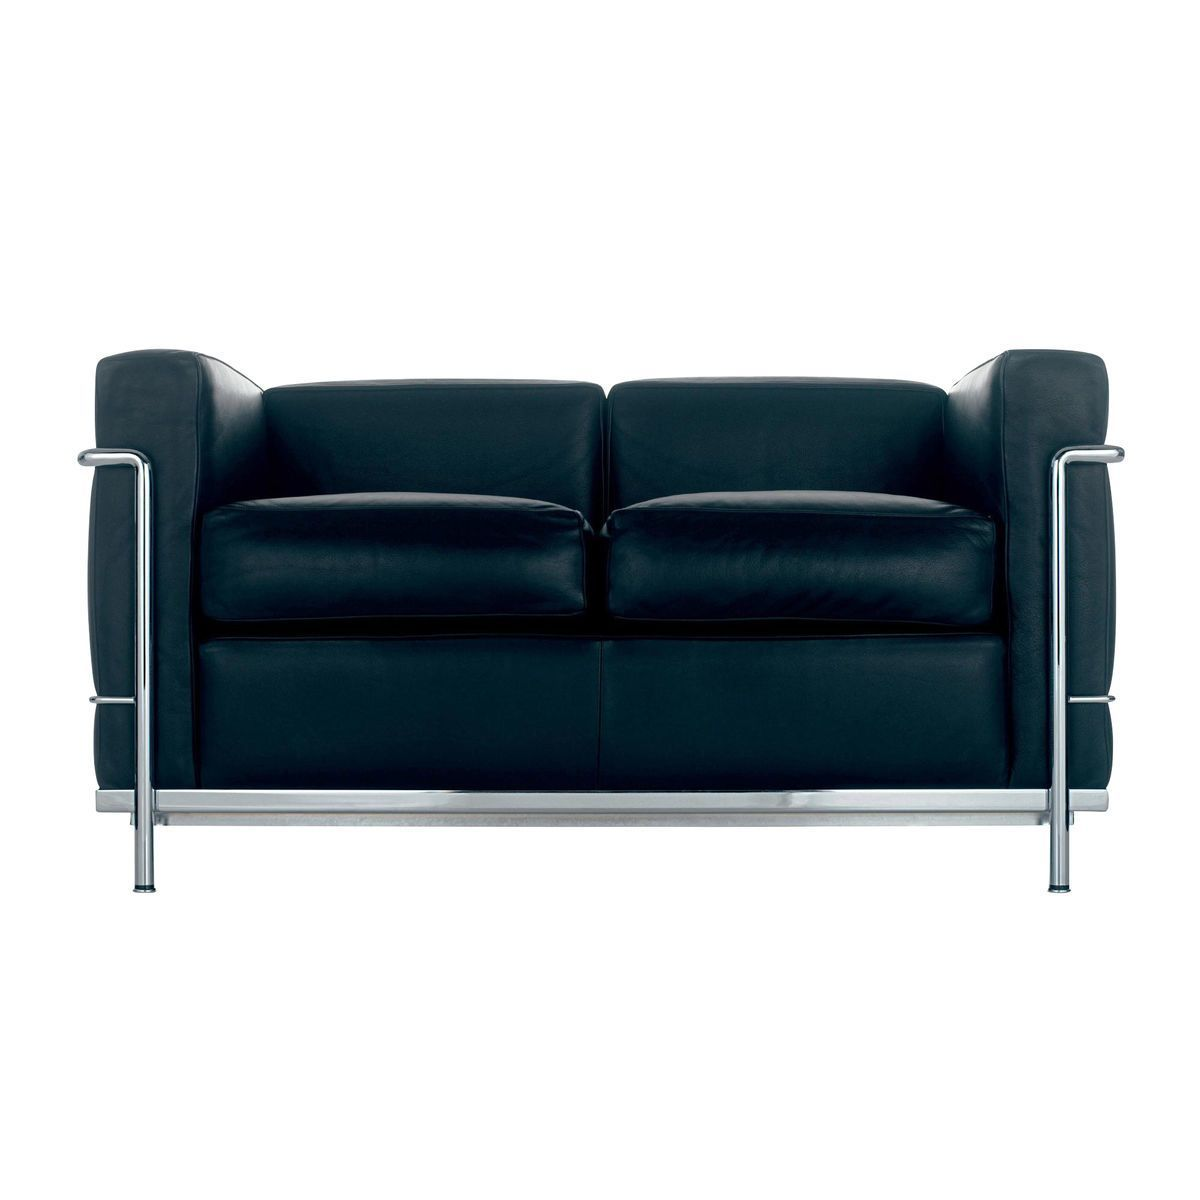 le corbusier lc2 sofa cassina cassina. Black Bedroom Furniture Sets. Home Design Ideas